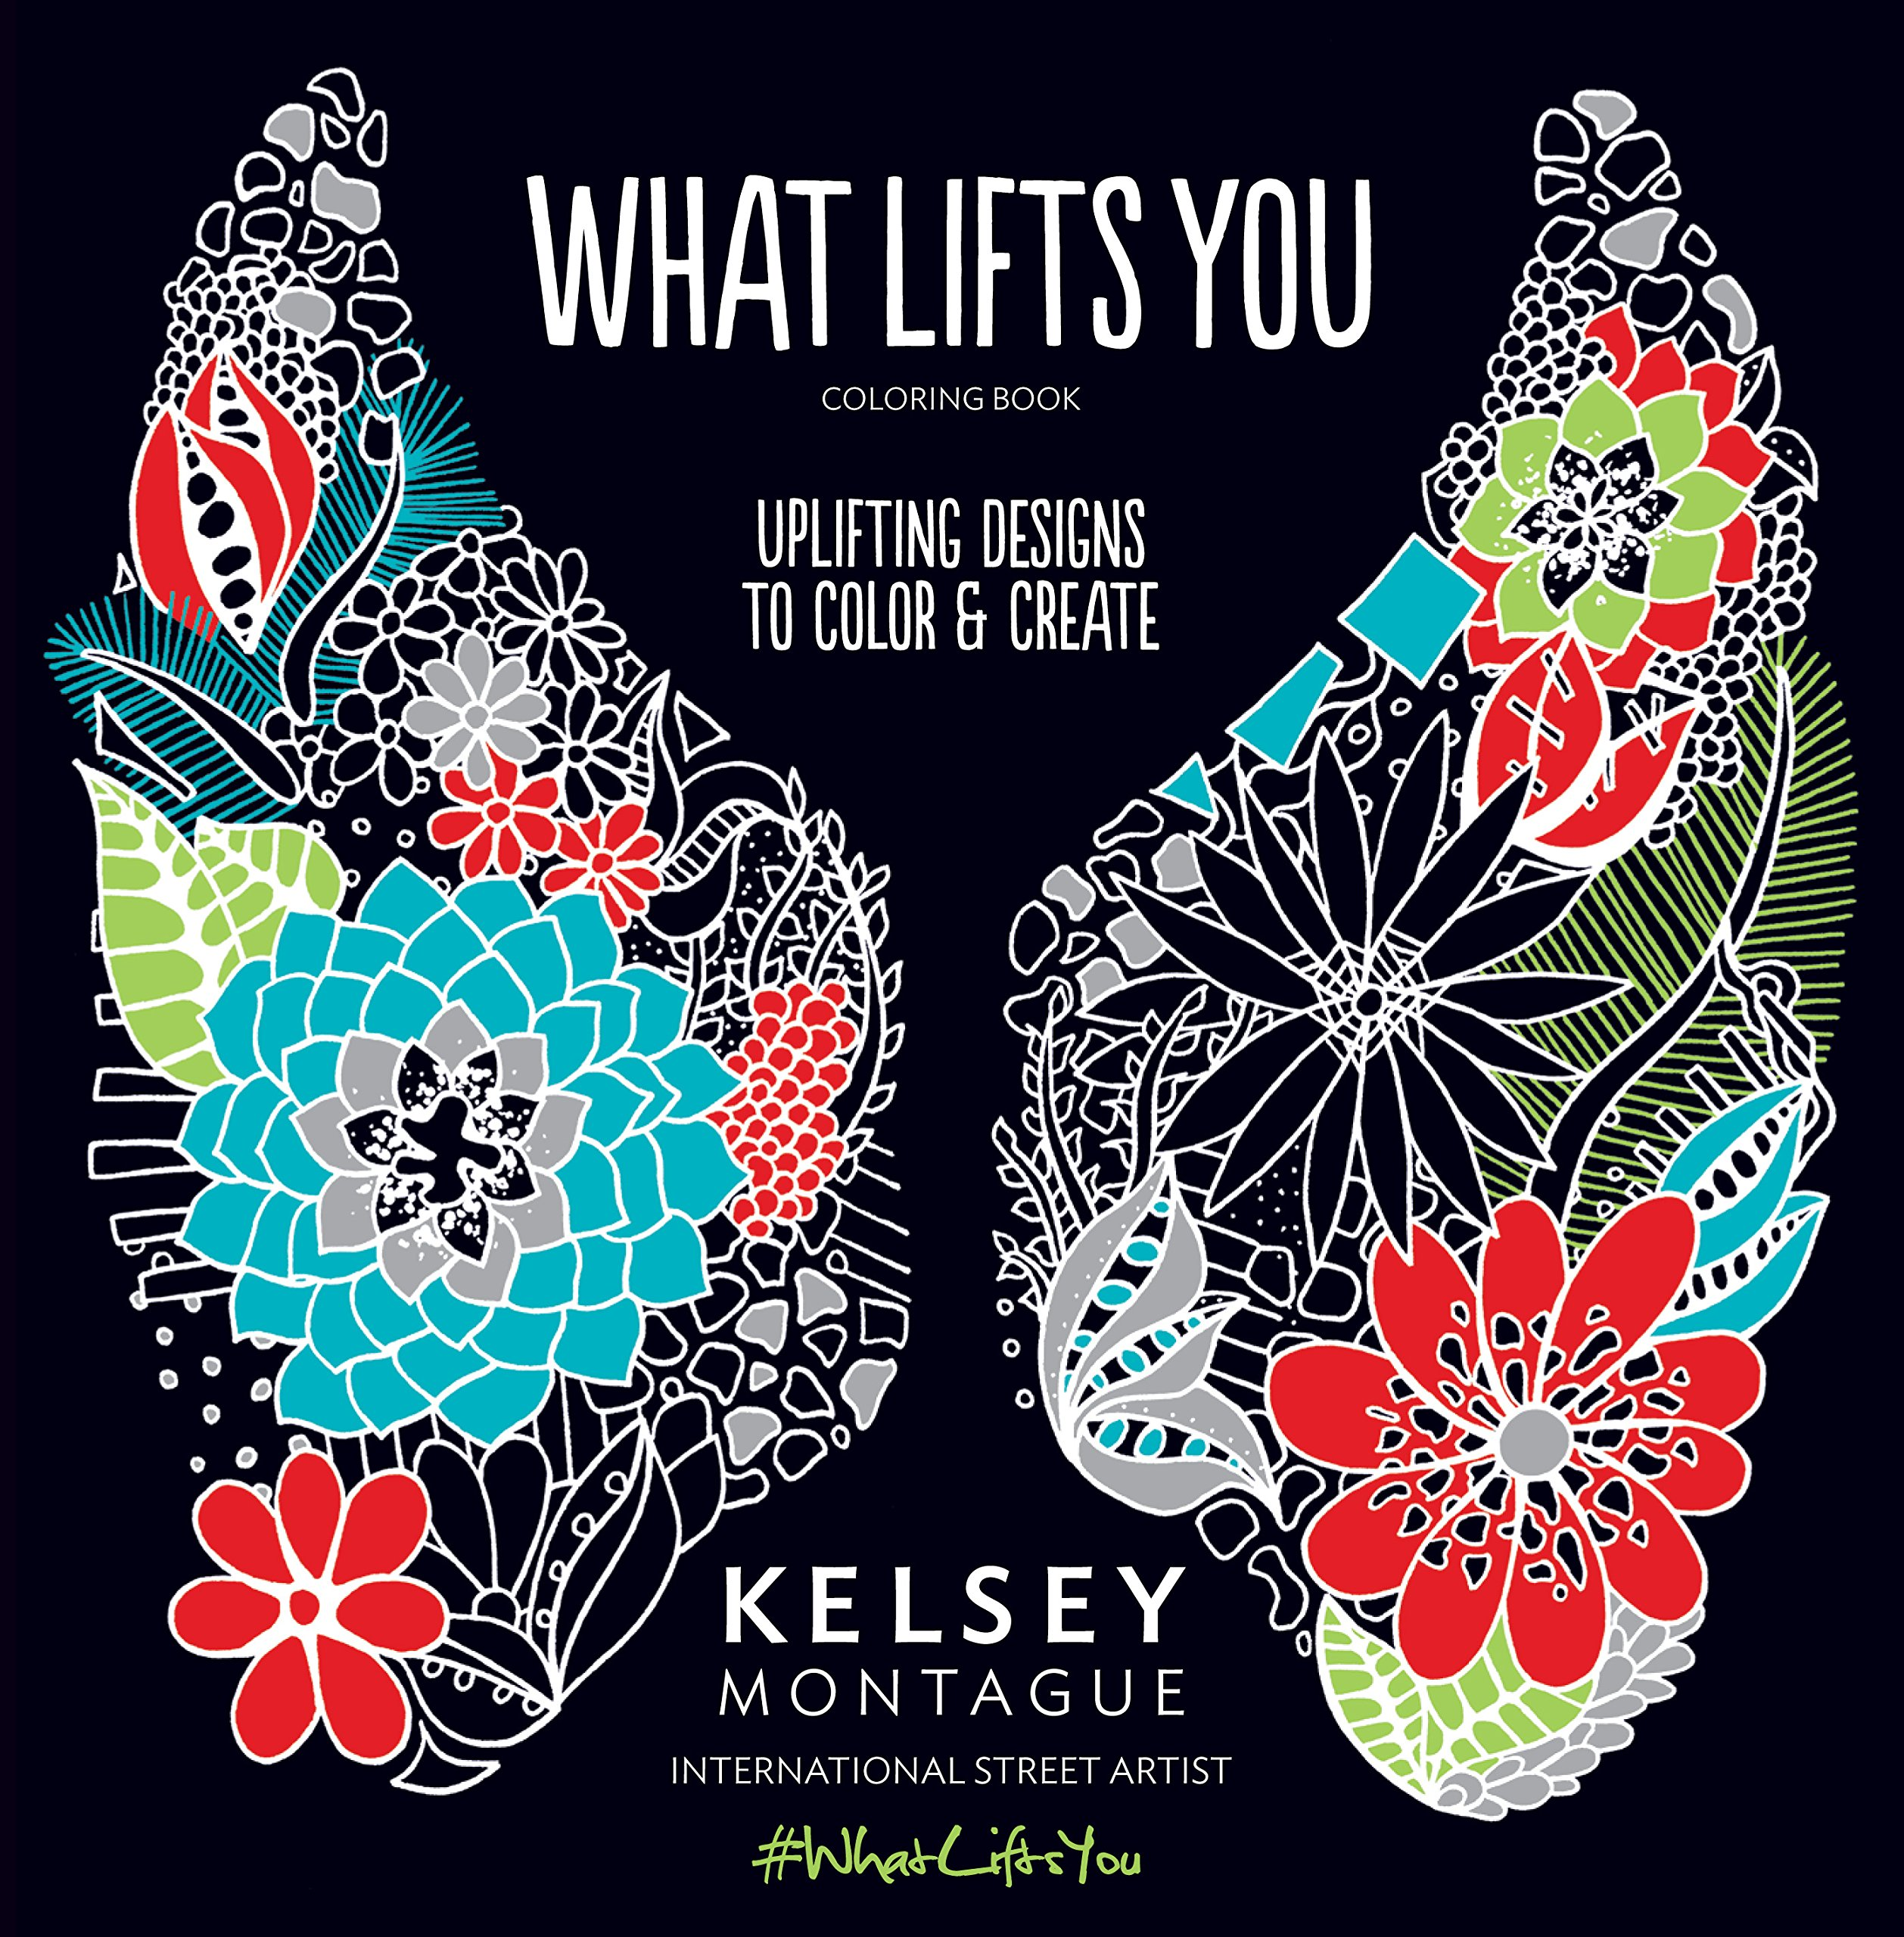 What Lifts You: Uplifting Designs to Color & Create